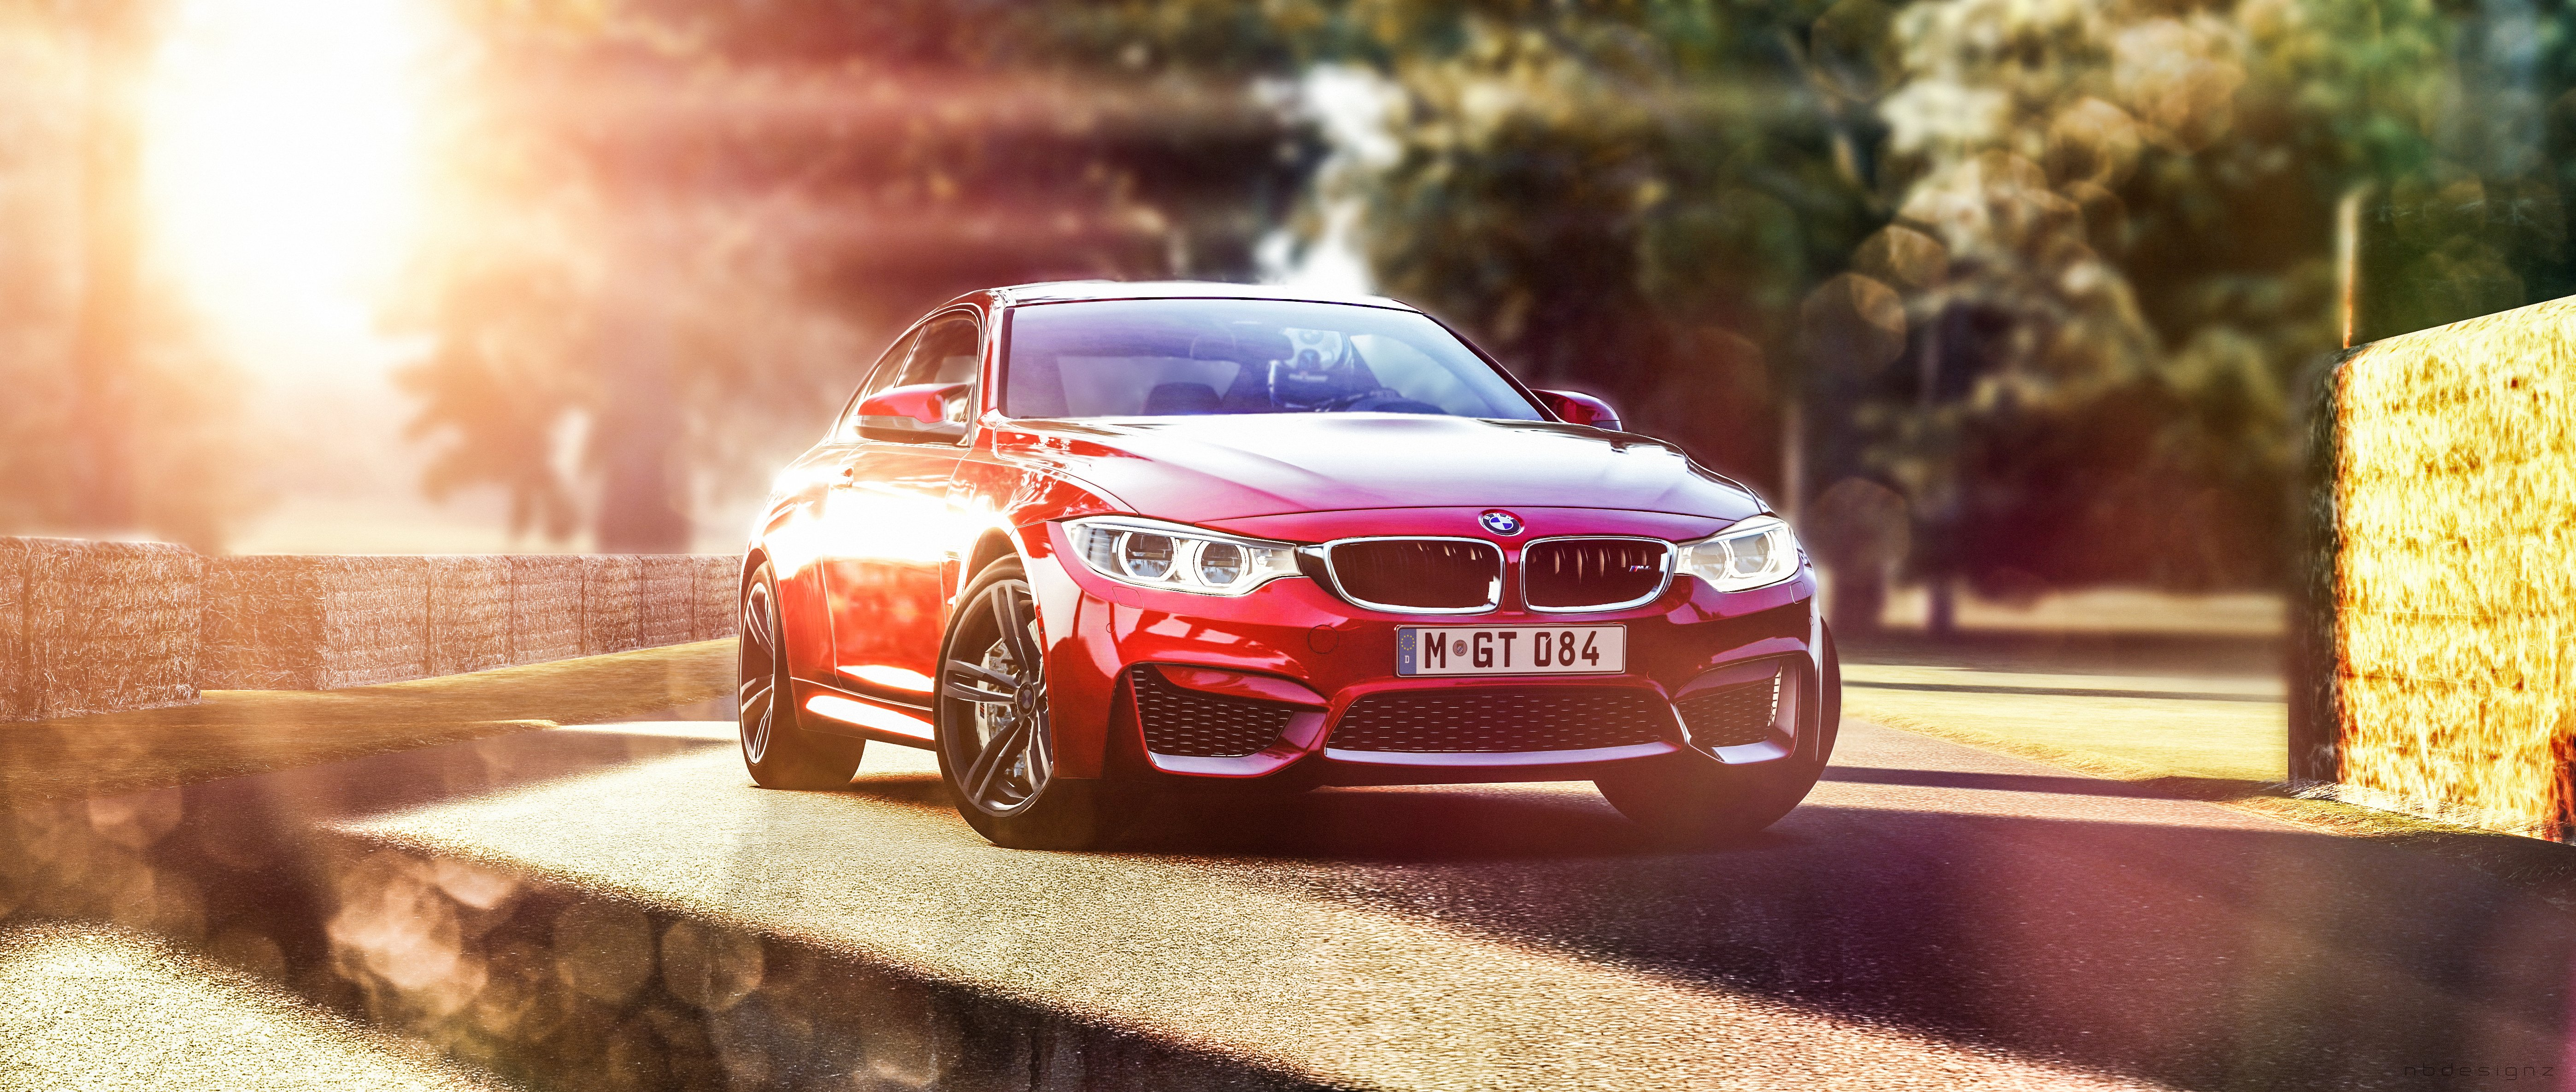 BMW i GT Xdrive Luxury vehicle HD Wallpaper for iPhone Android